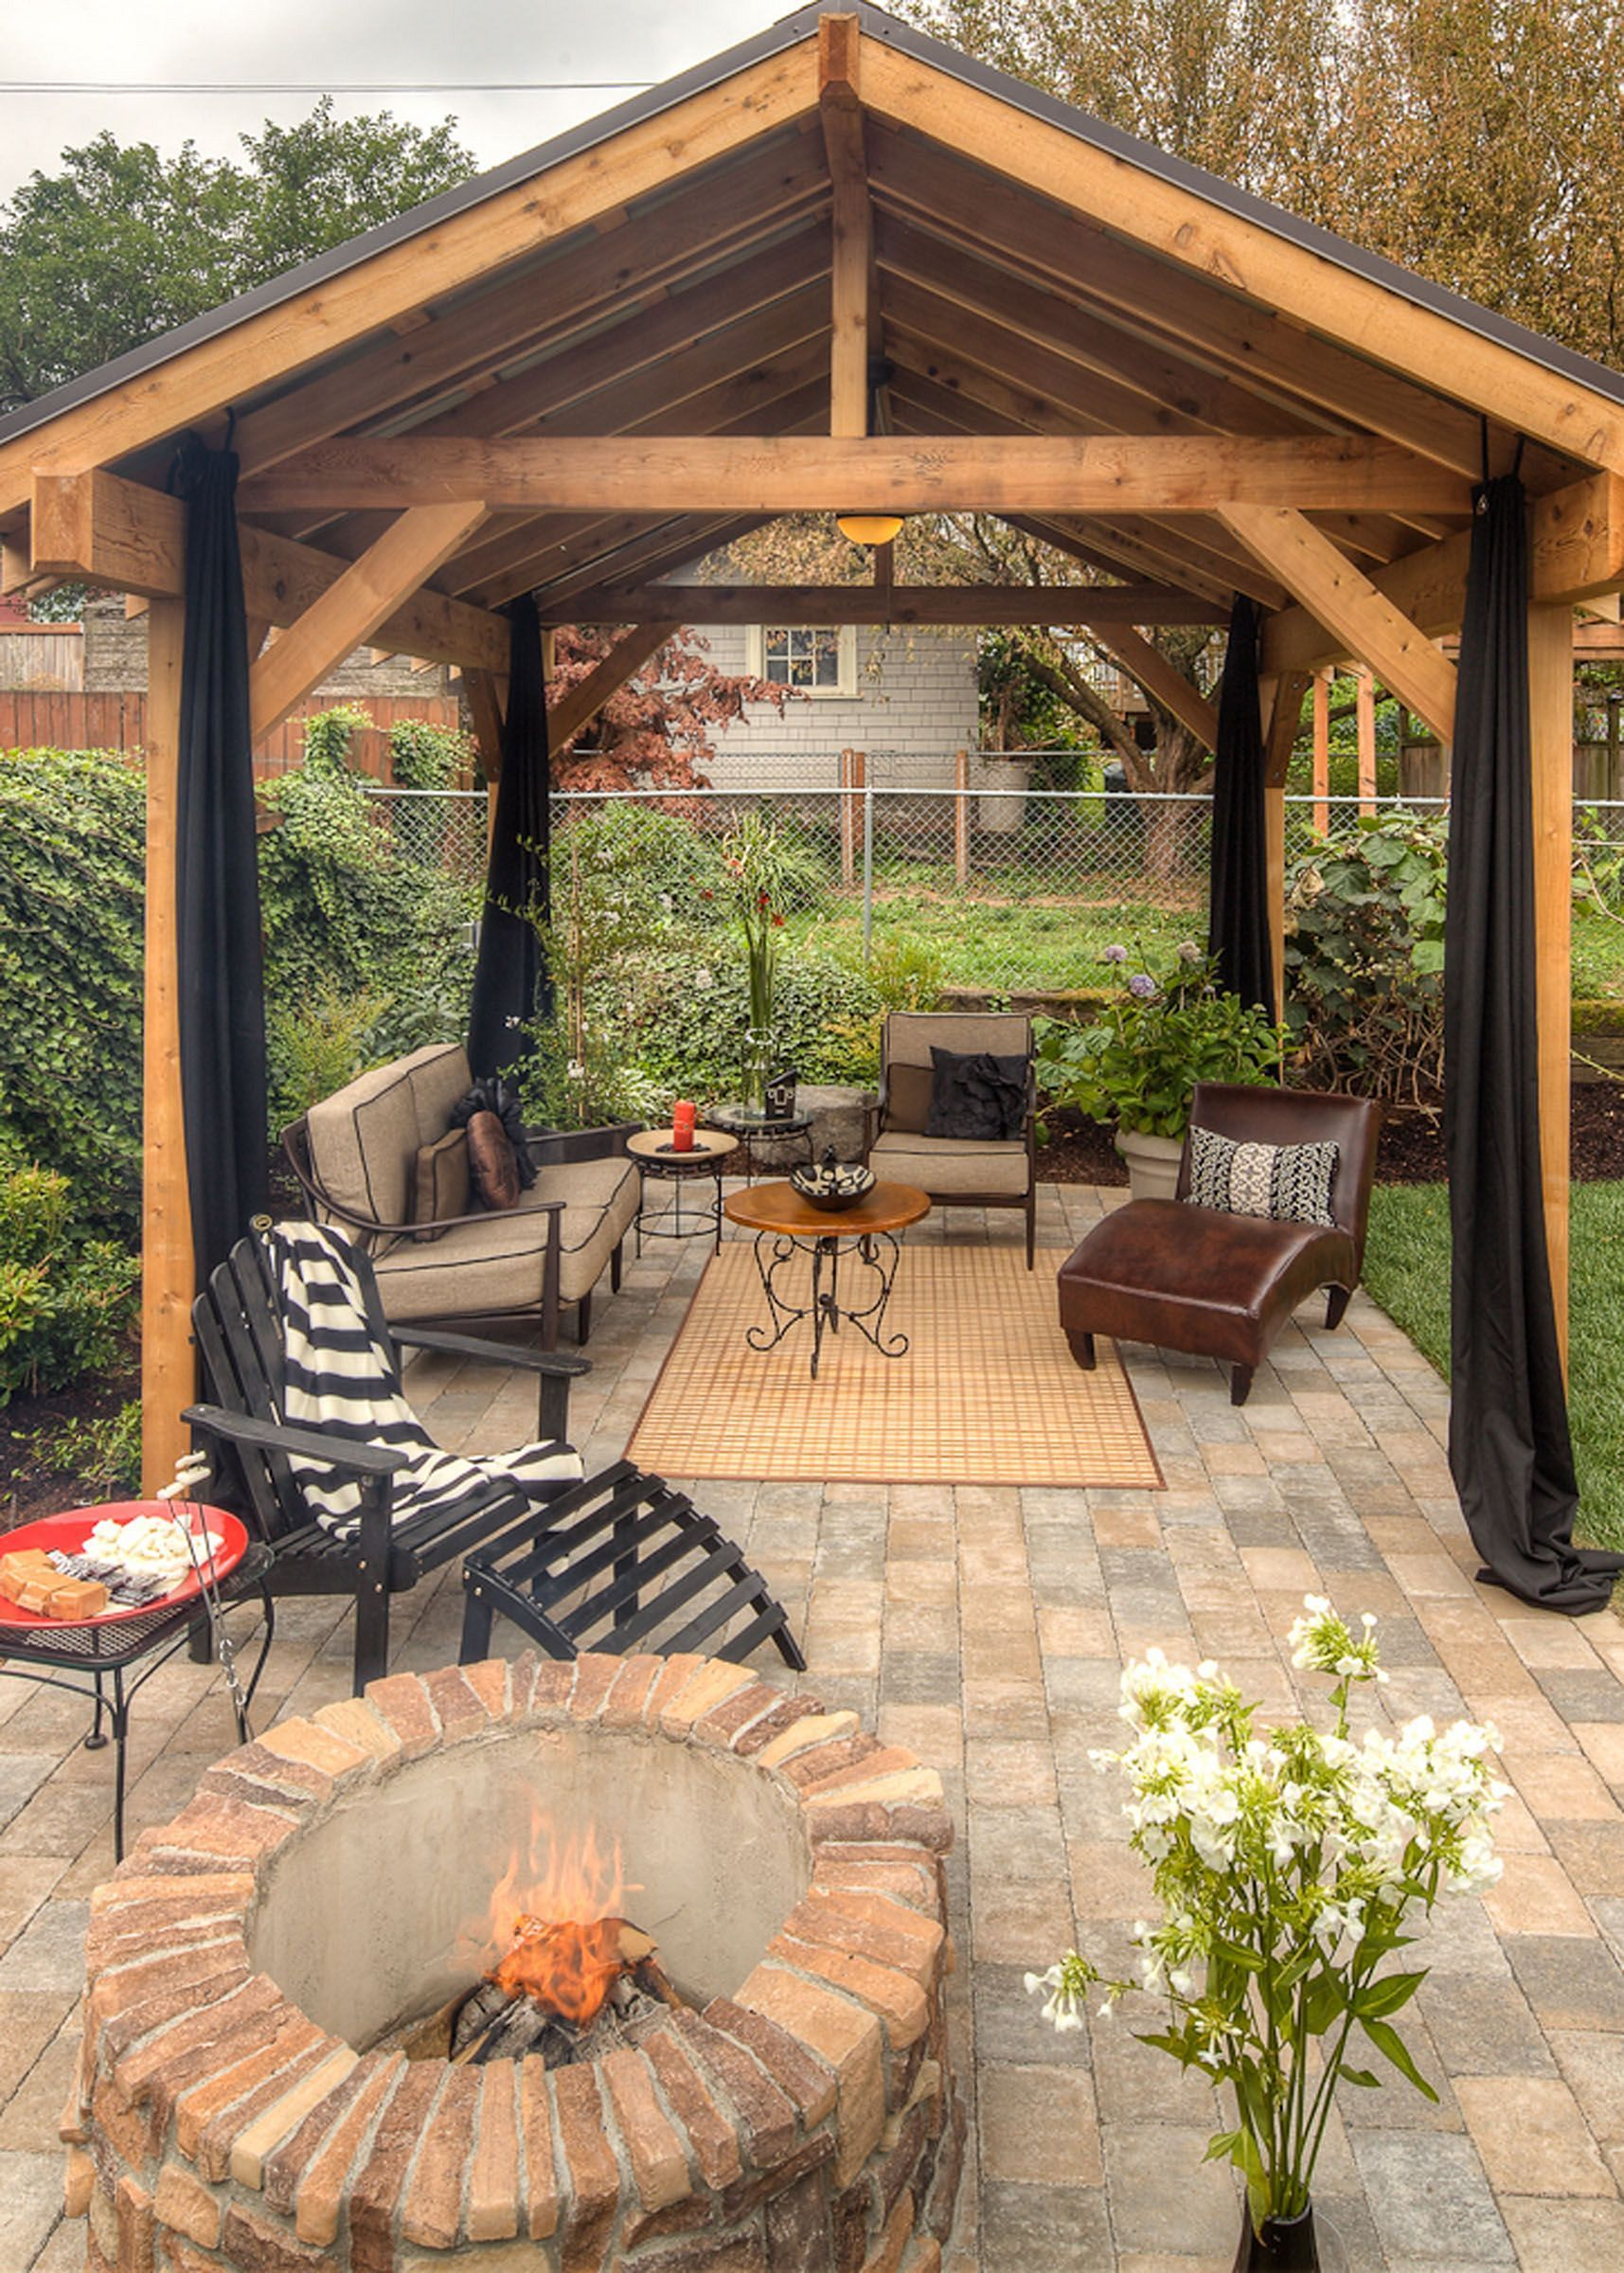 Pin On Home Outdoors Ideas